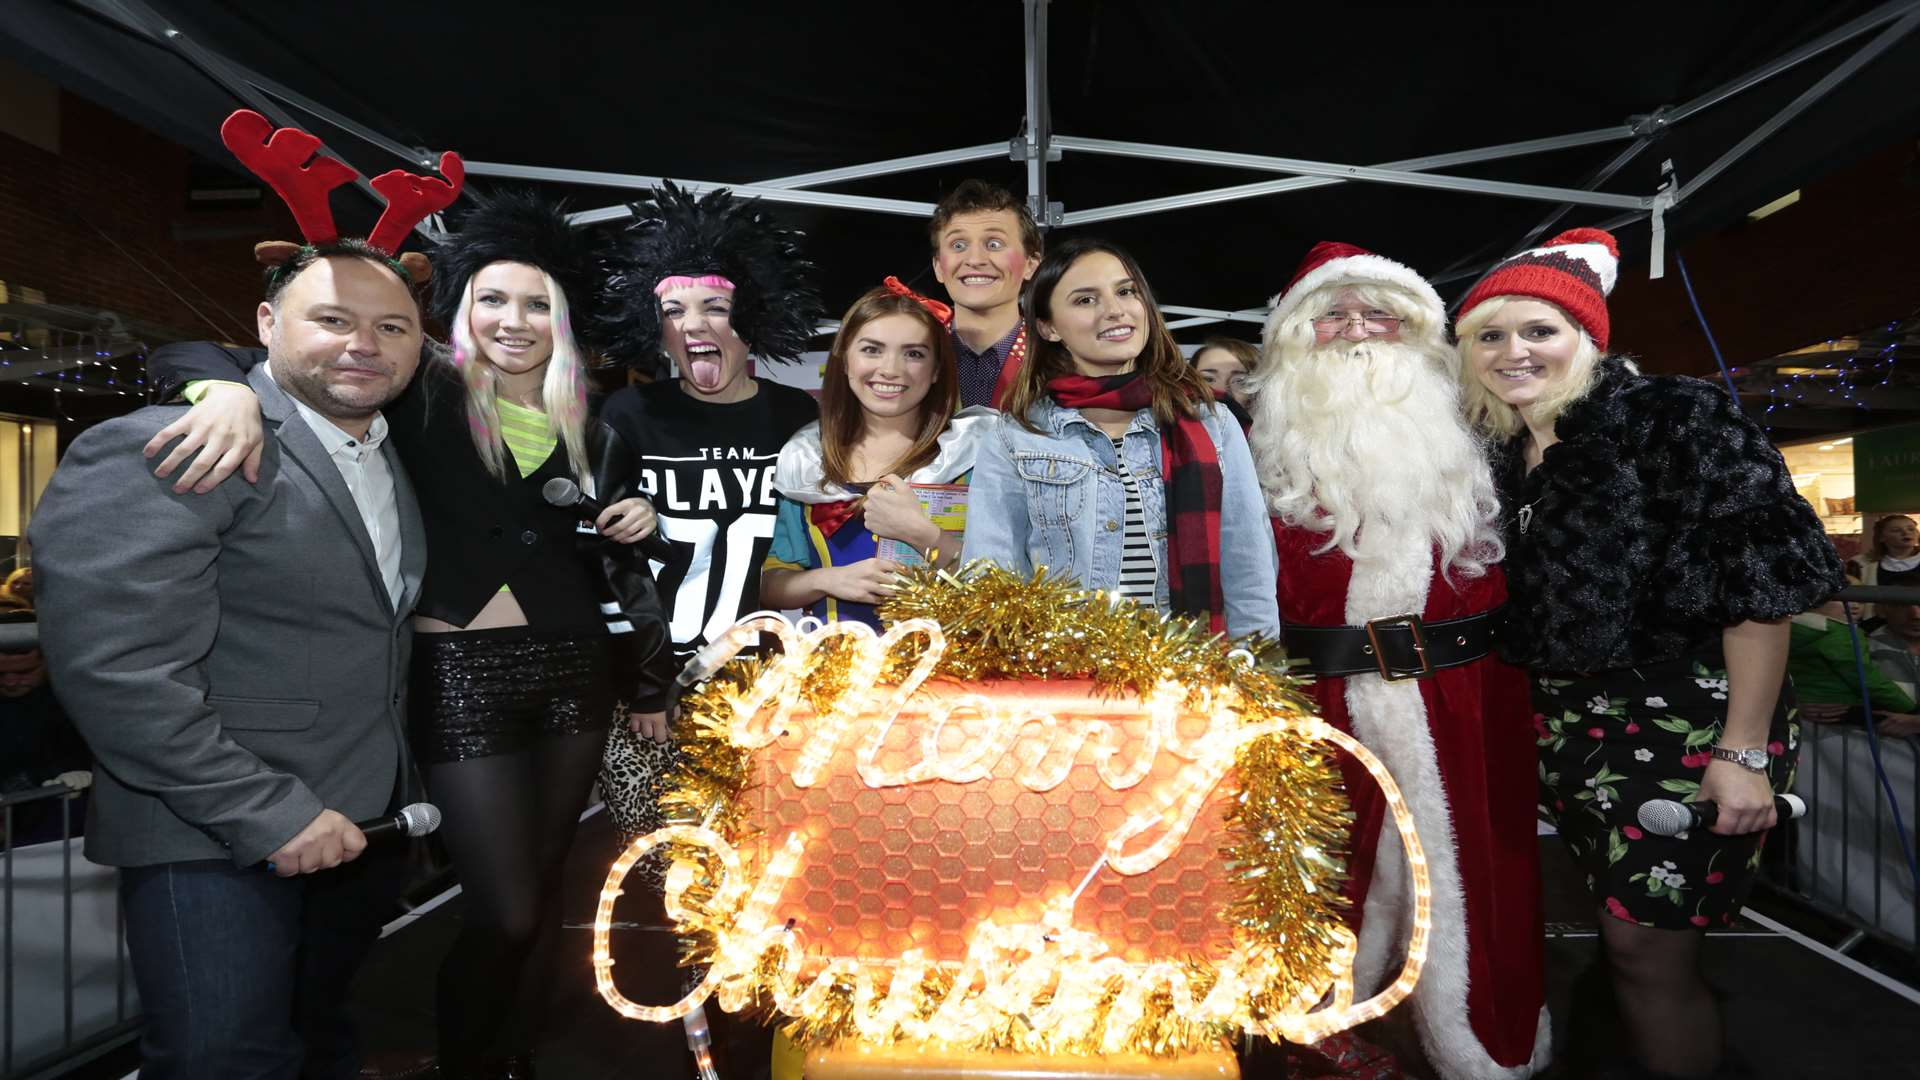 Made In Chelsea Star Among The Celebs As Maidstone S Christmas Images, Photos, Reviews